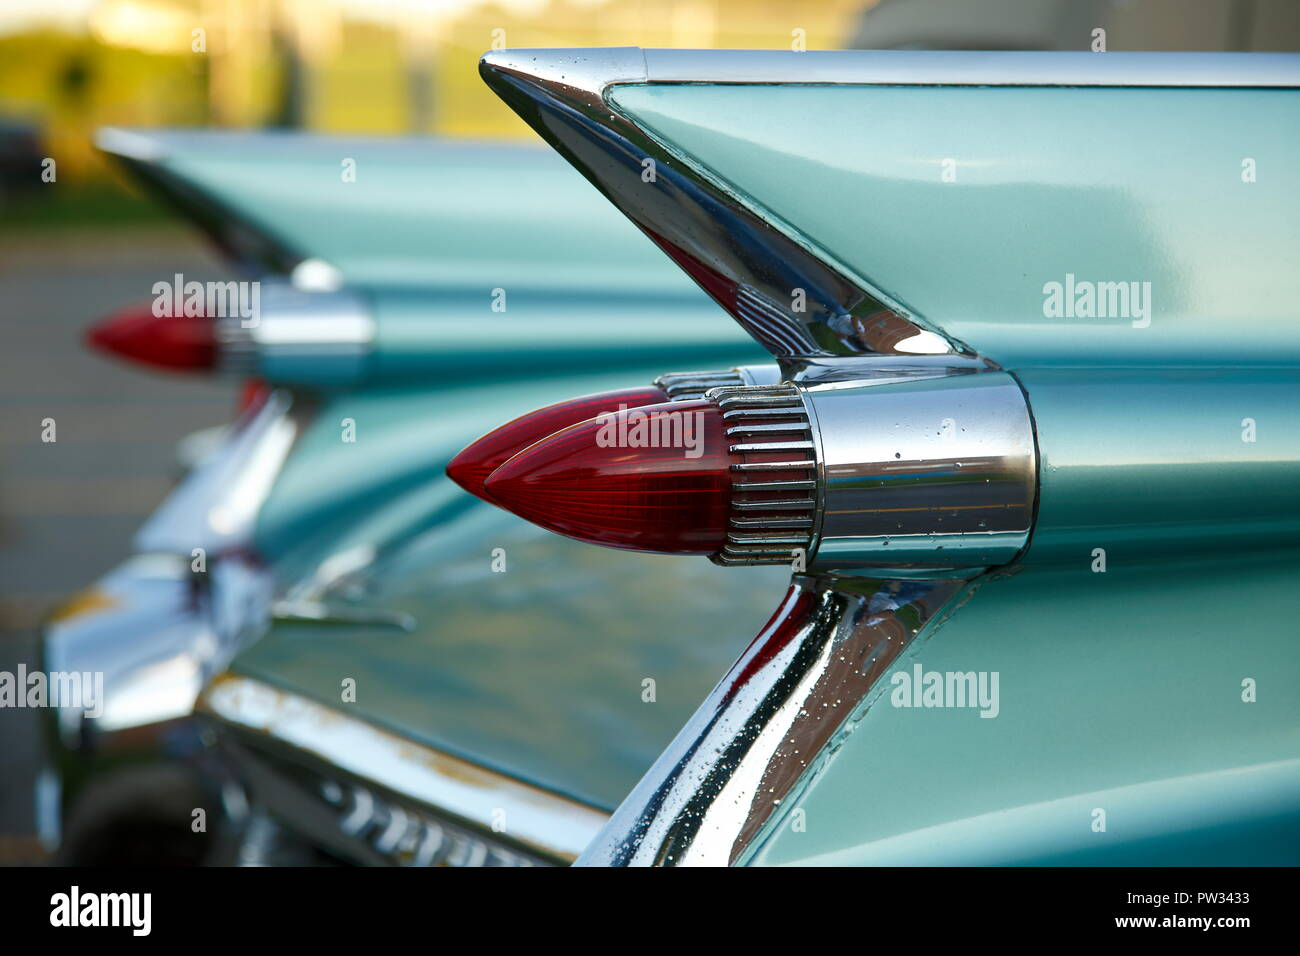 Tail fins with red tail lights of an american vintage car, Cadillac de Ville 1959, Canada - Stock Image